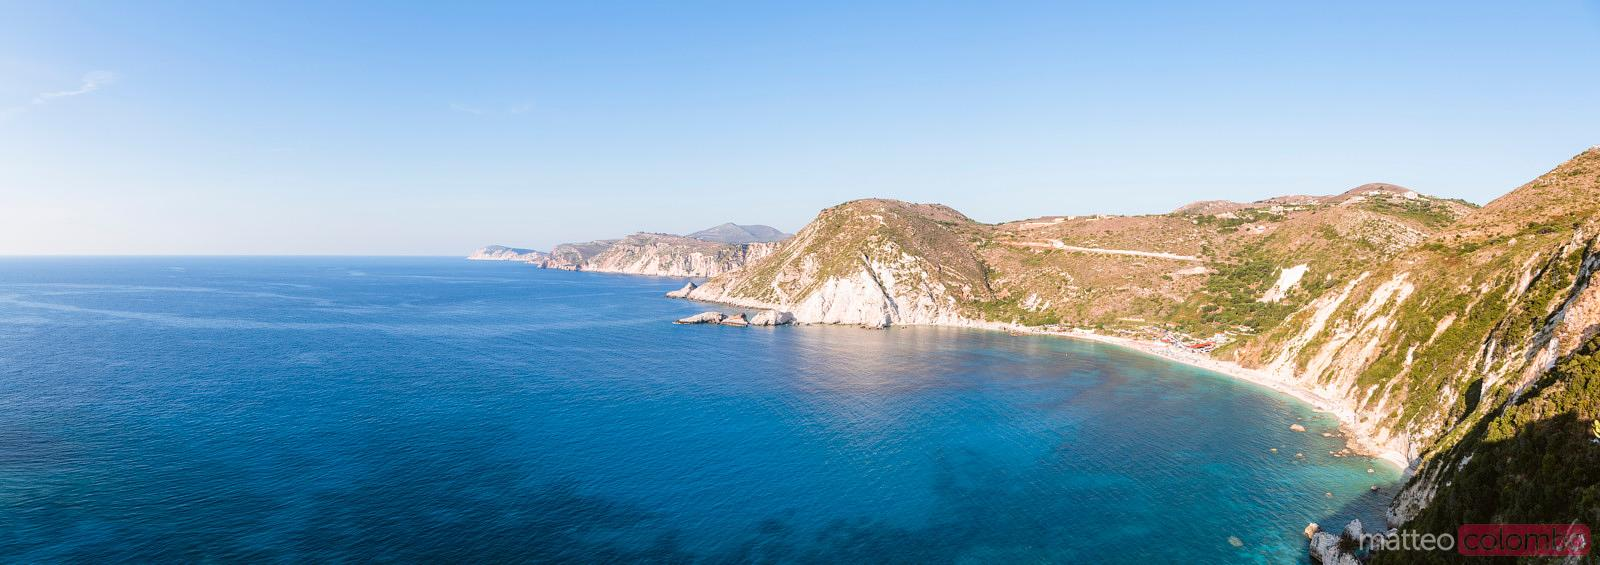 Panoramic view of Kefalonia island and blue sea in summer, Greece